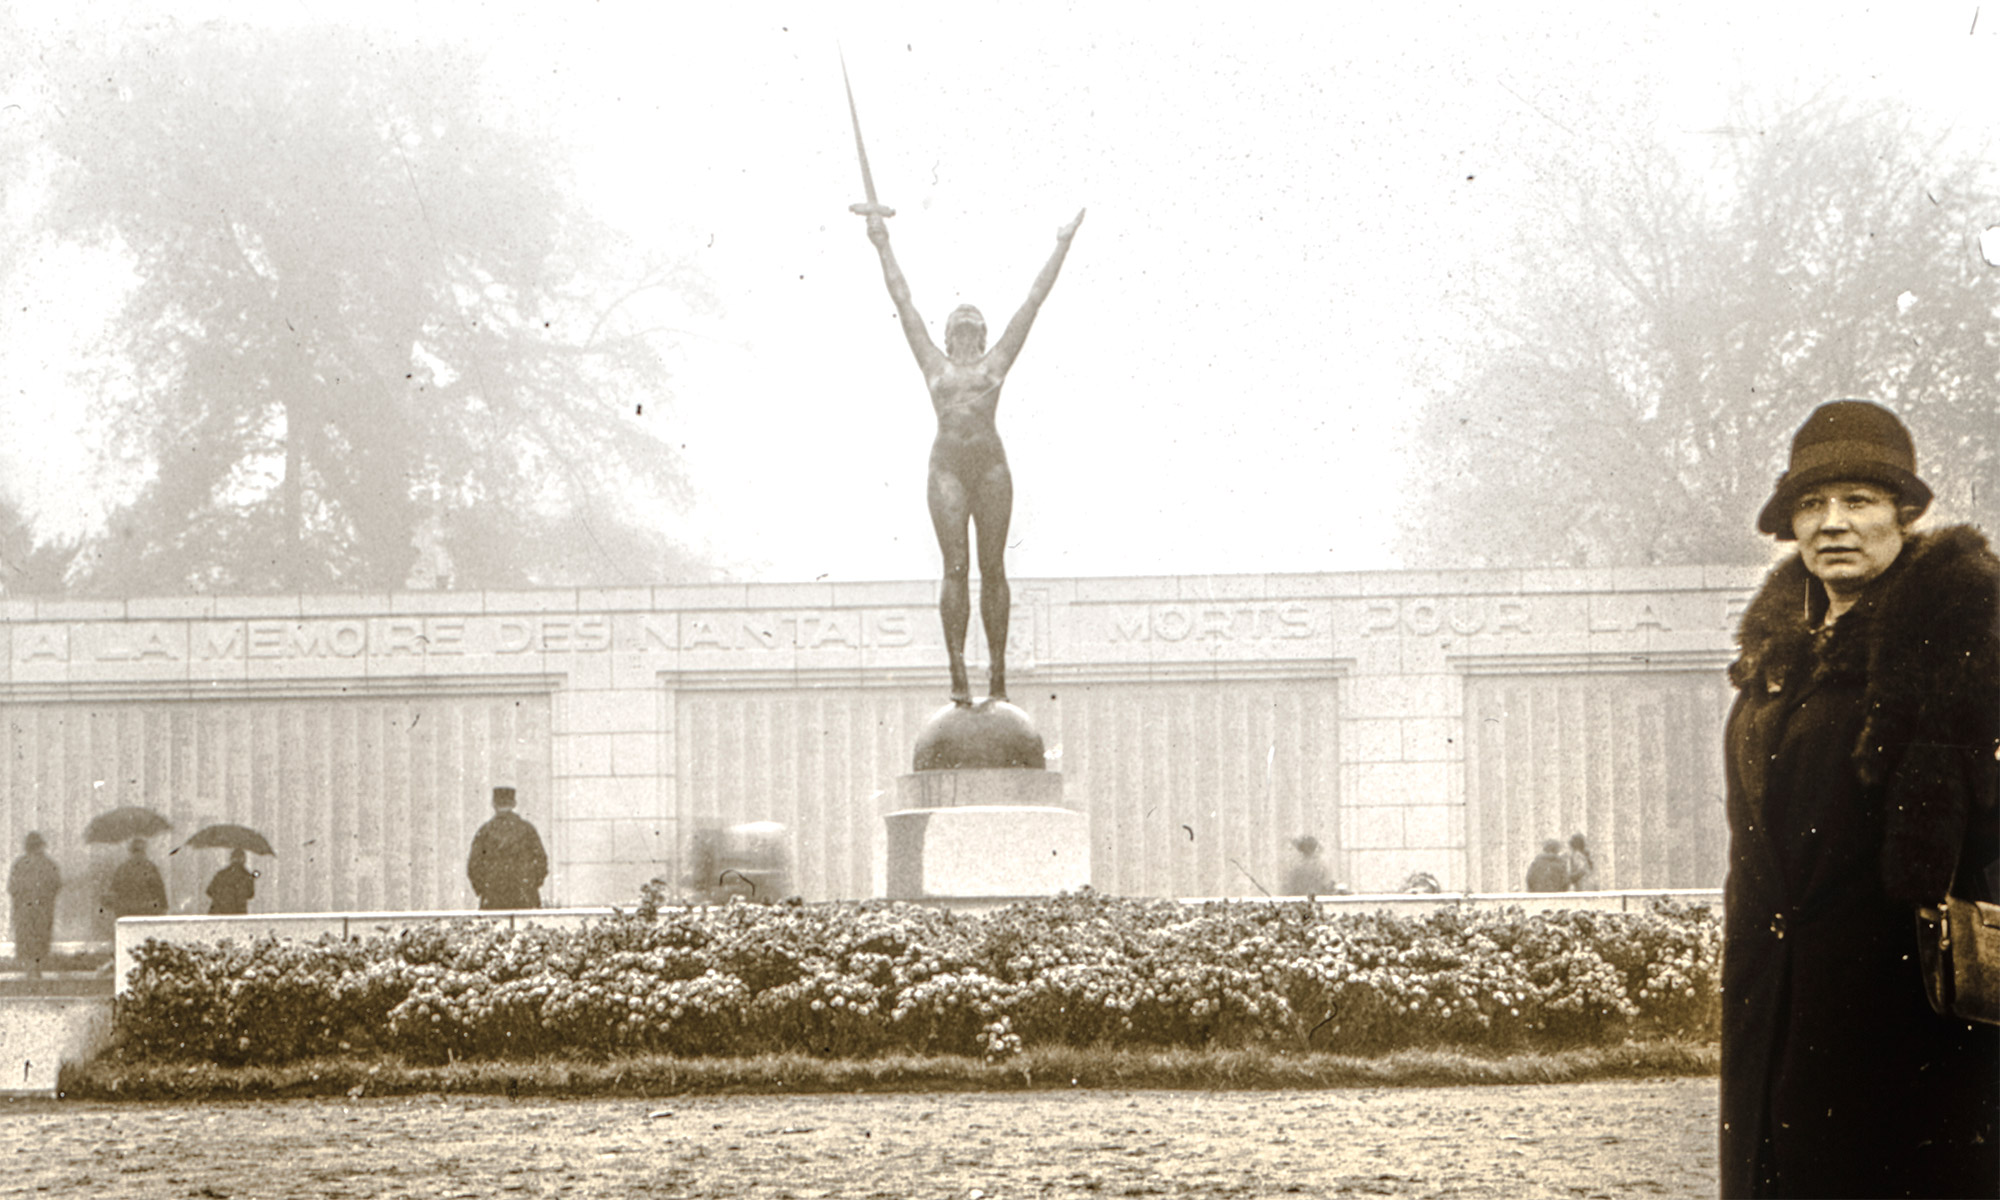 """La Délivrance"", part of the Nantes Memorial to the War Dead, in 1927"